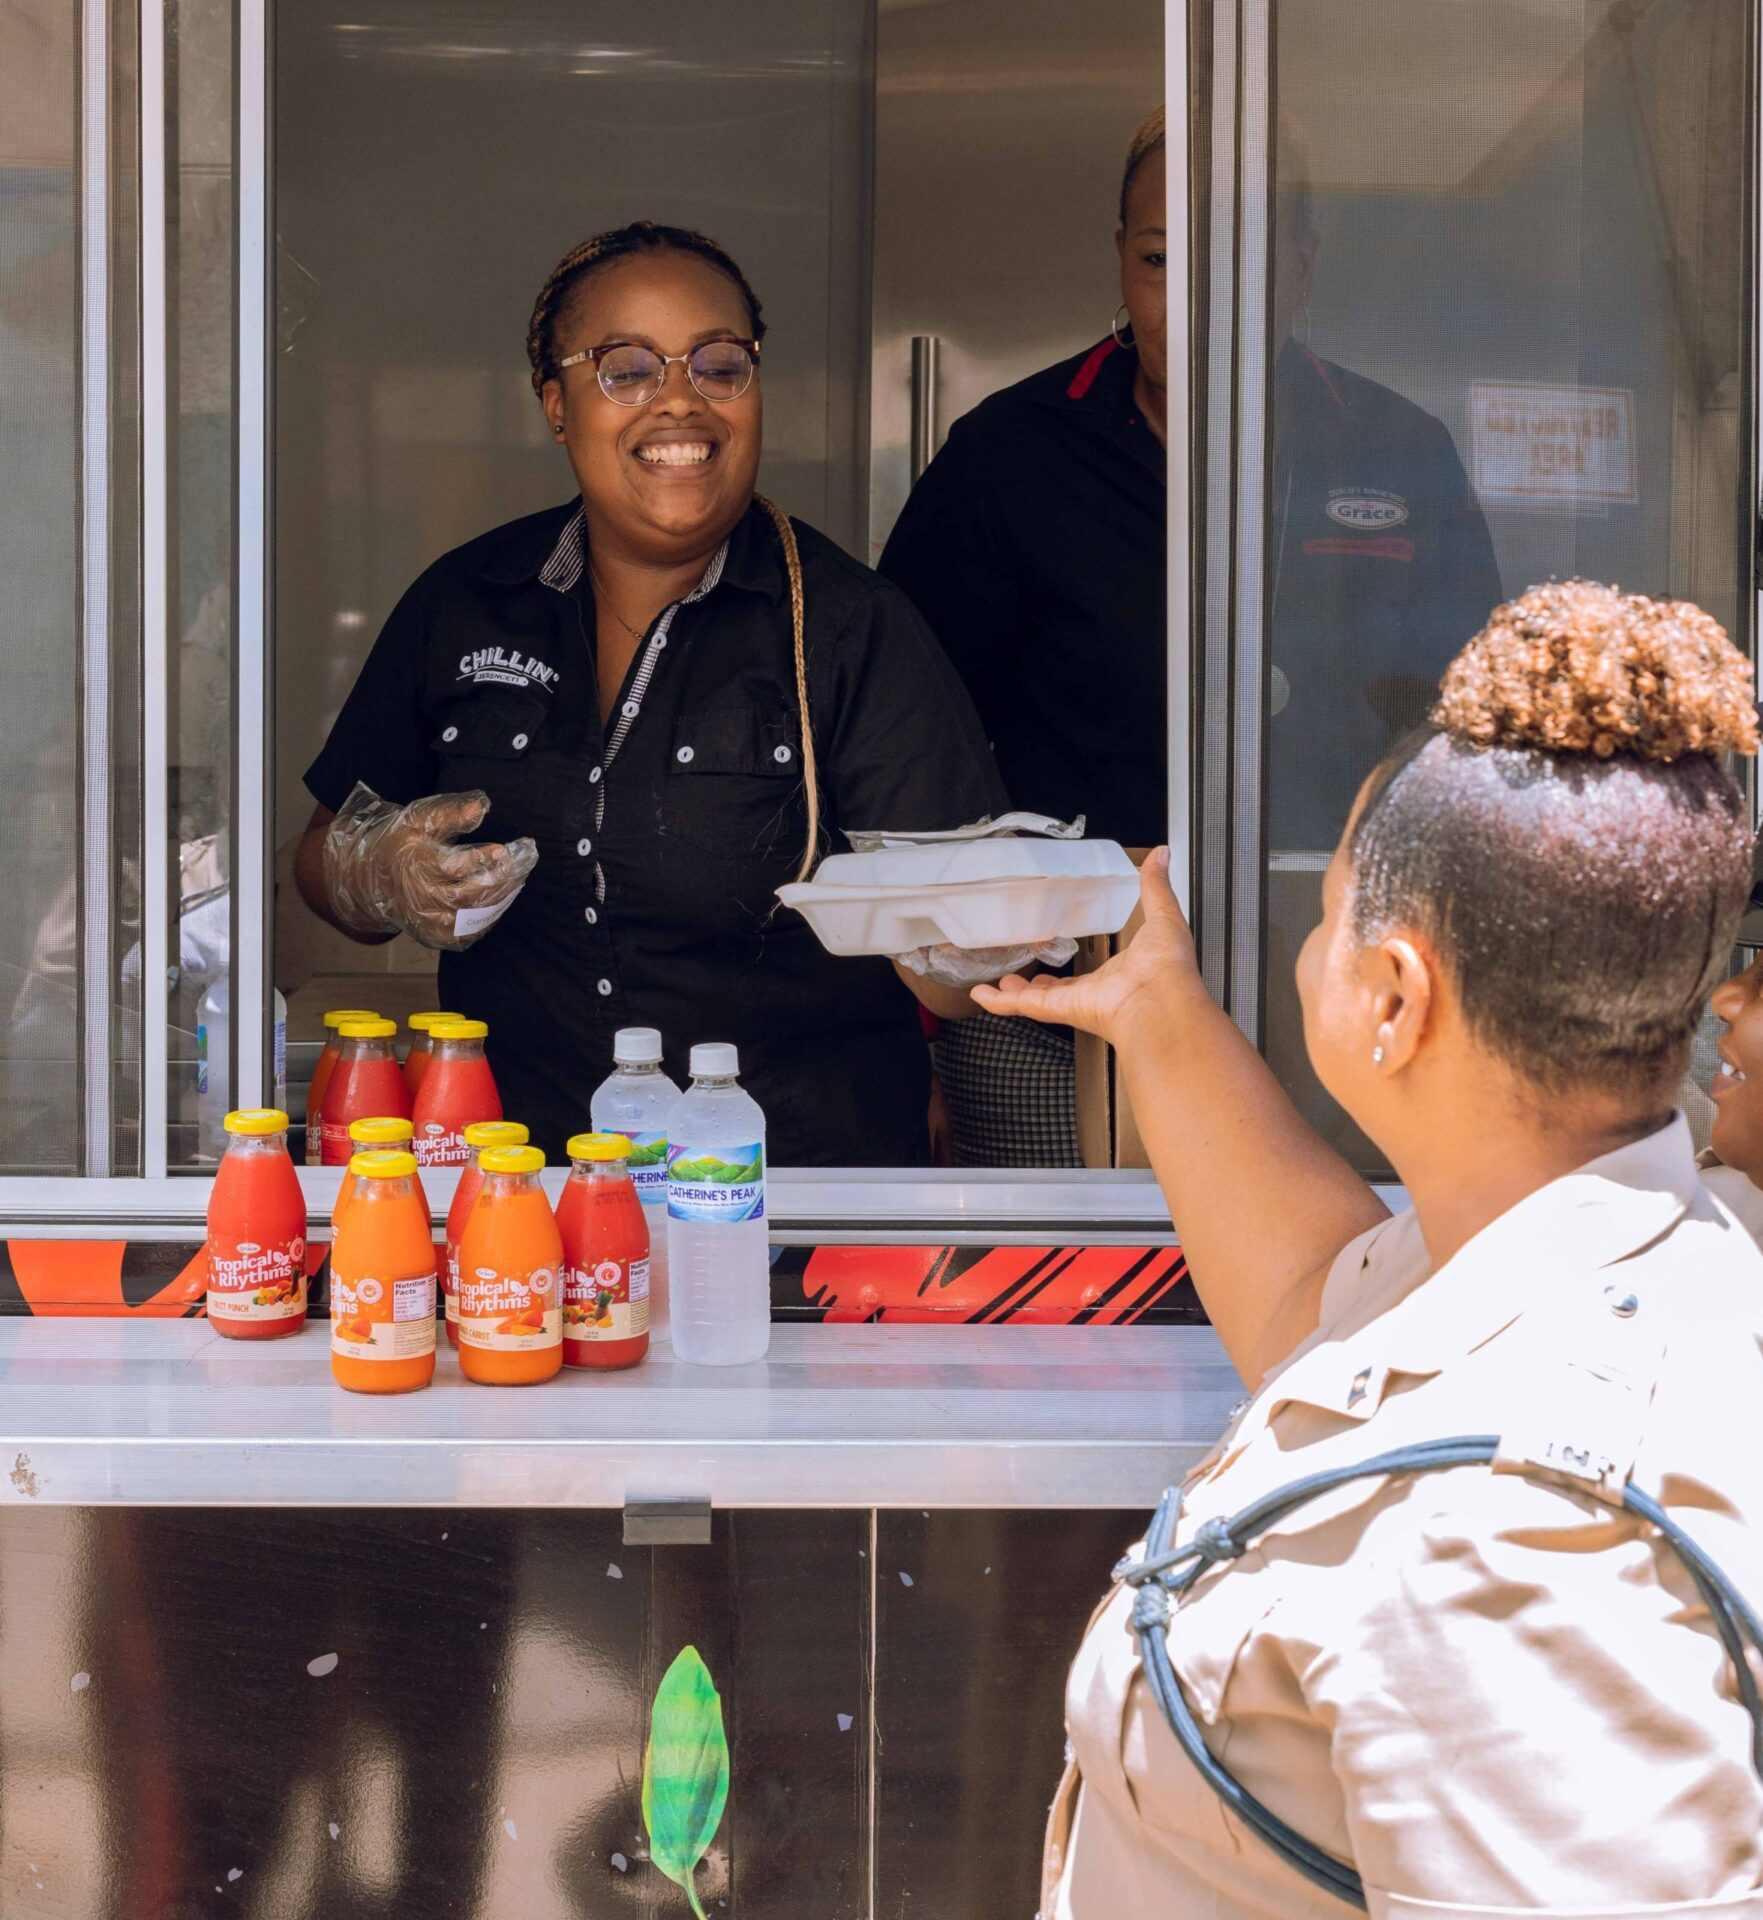 Good Food Served With A Gracious Smile